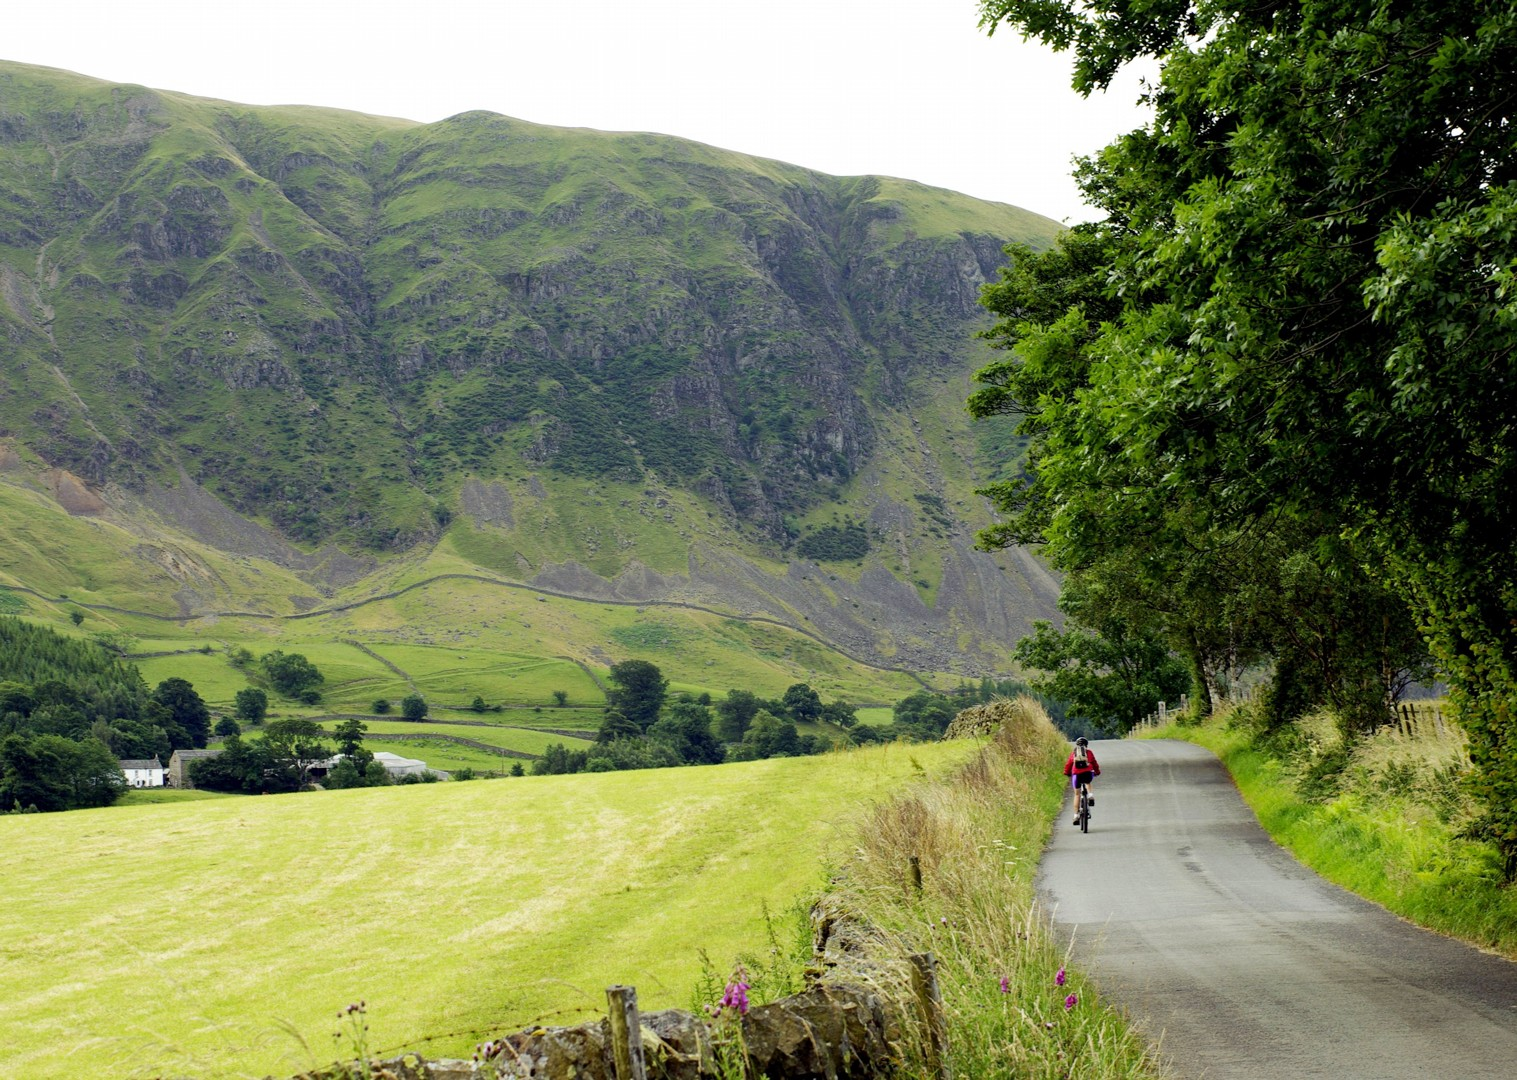 cycling-holiday-uk-guided.jpg - UK - Land's End to John O'Groats Explorer (22 days) - Guided Cycling Holiday - Leisure Cycling